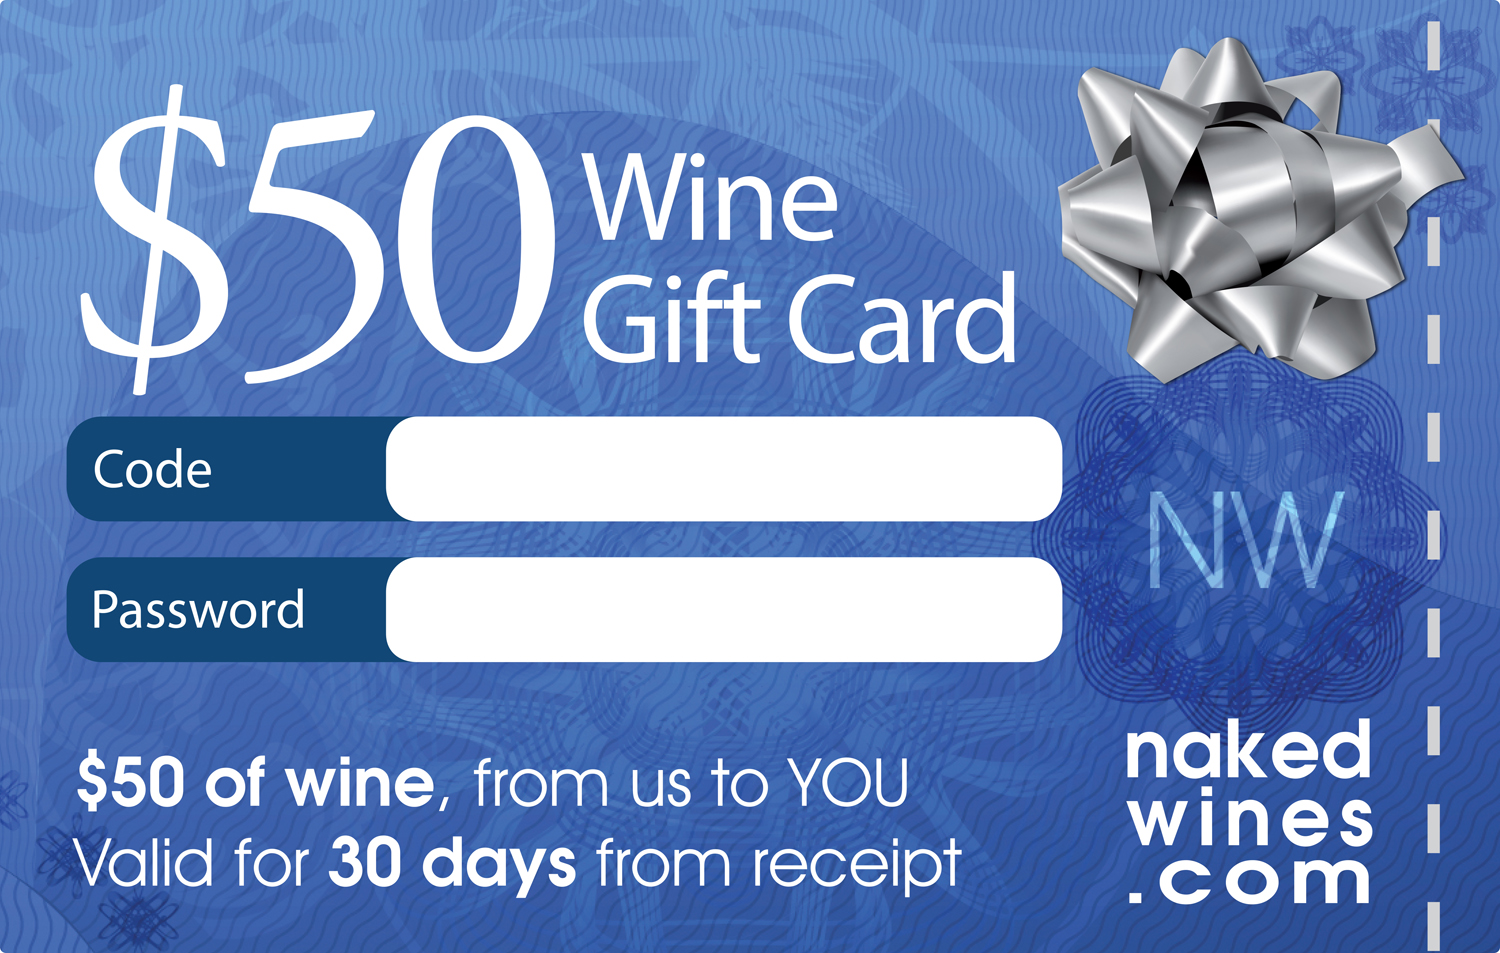 Discover Winc - A wine club that makes exploring wines fun and easy.